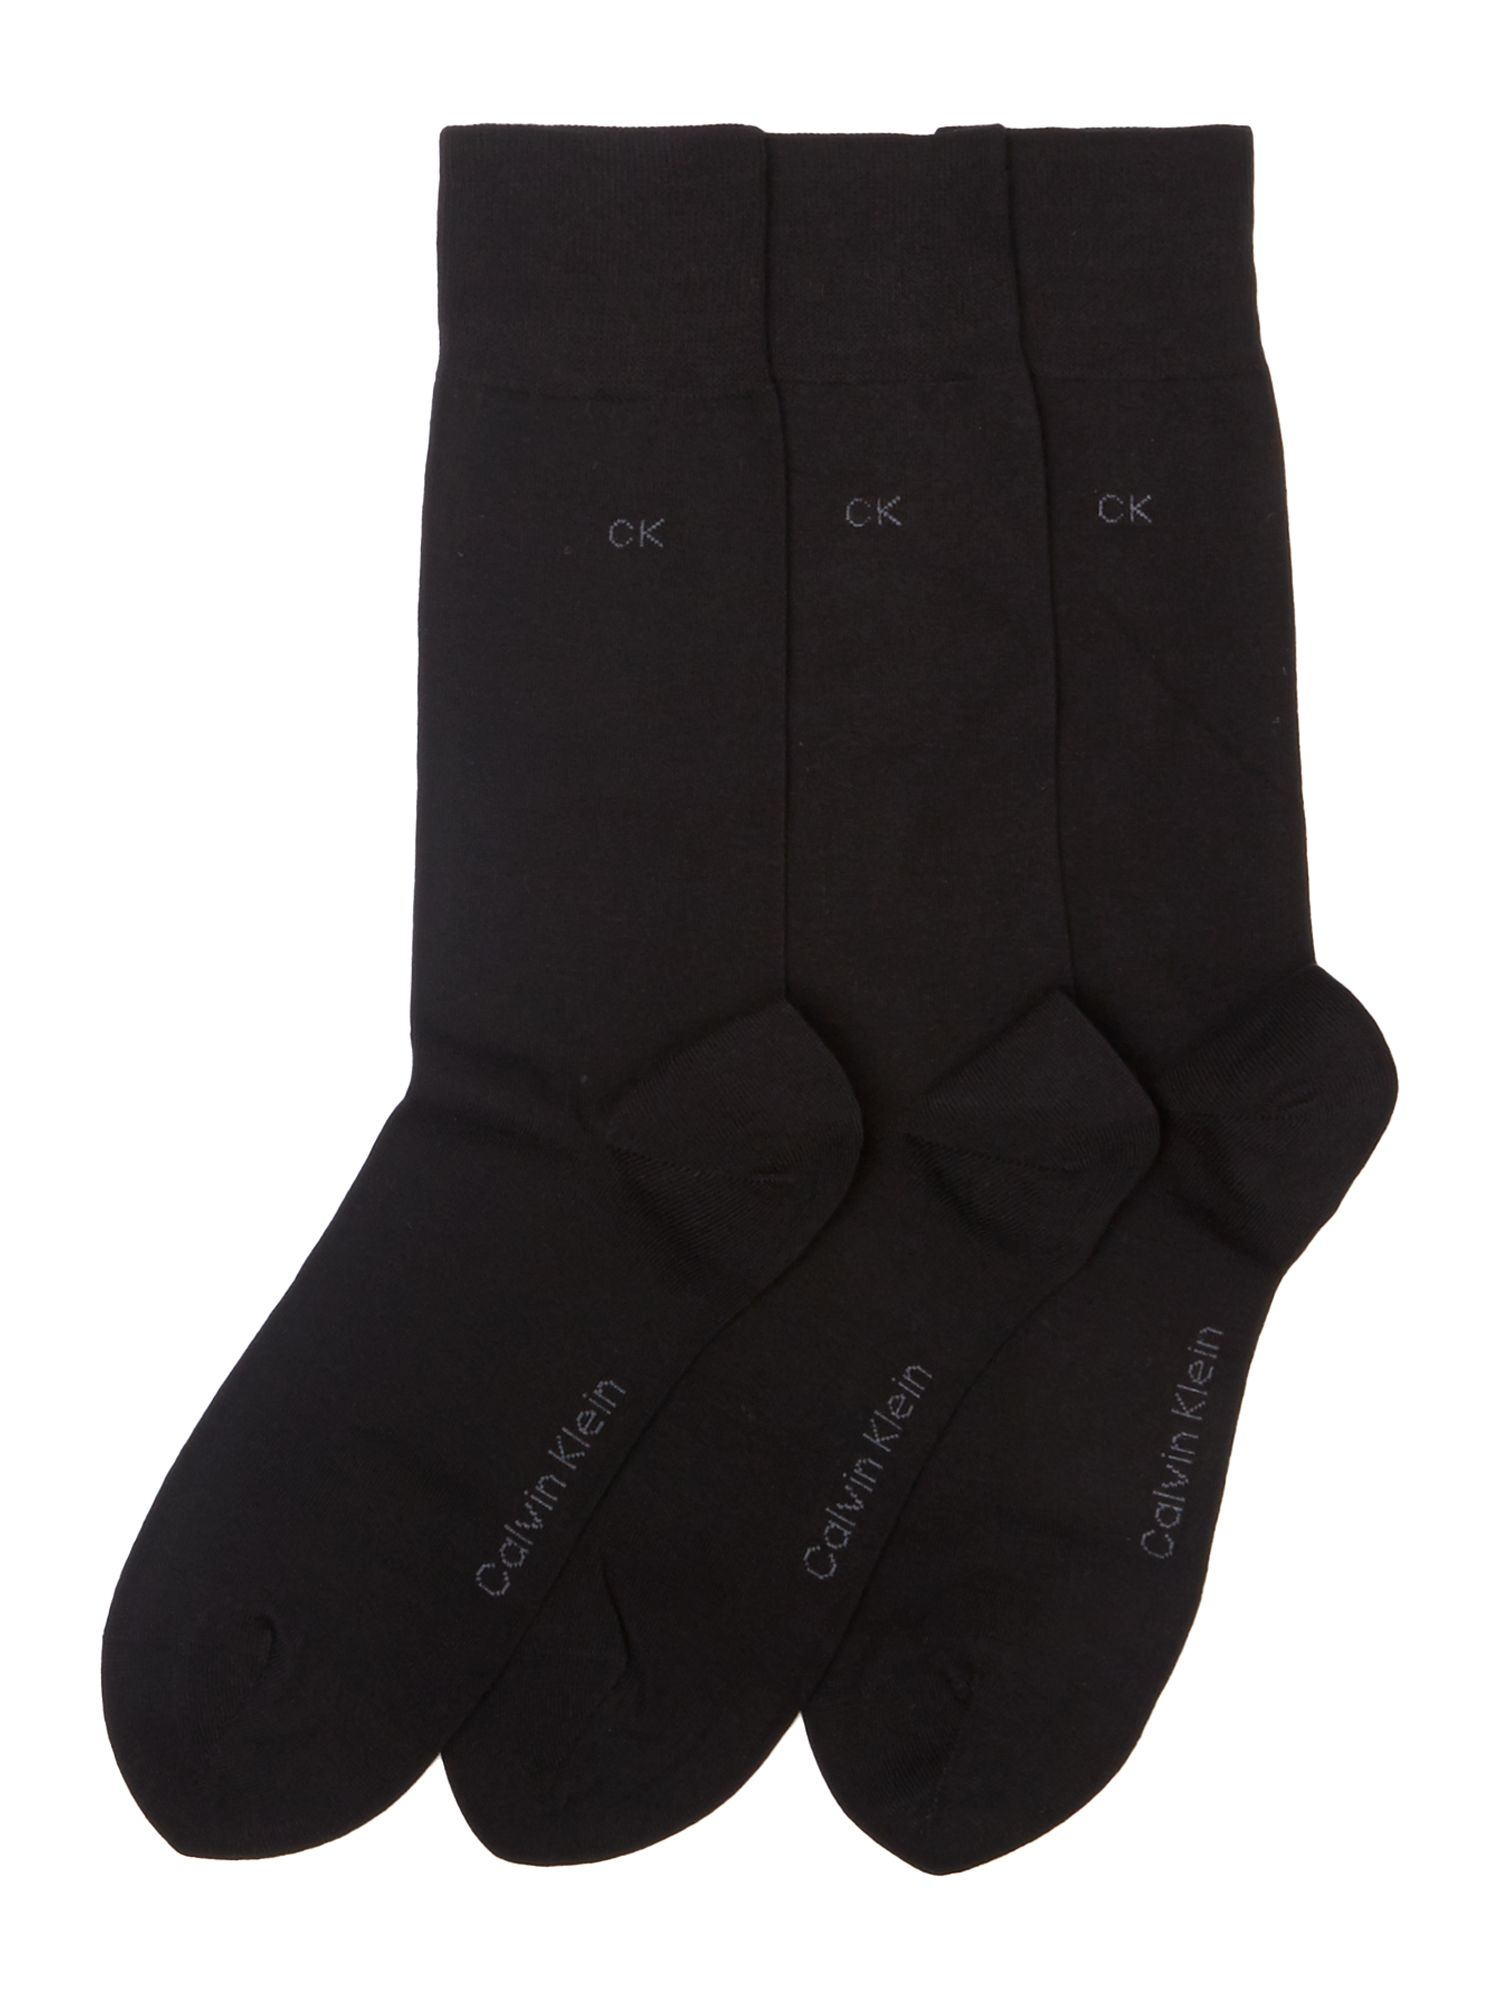 Mens Calvin Klein Three pack flat knit socks Black